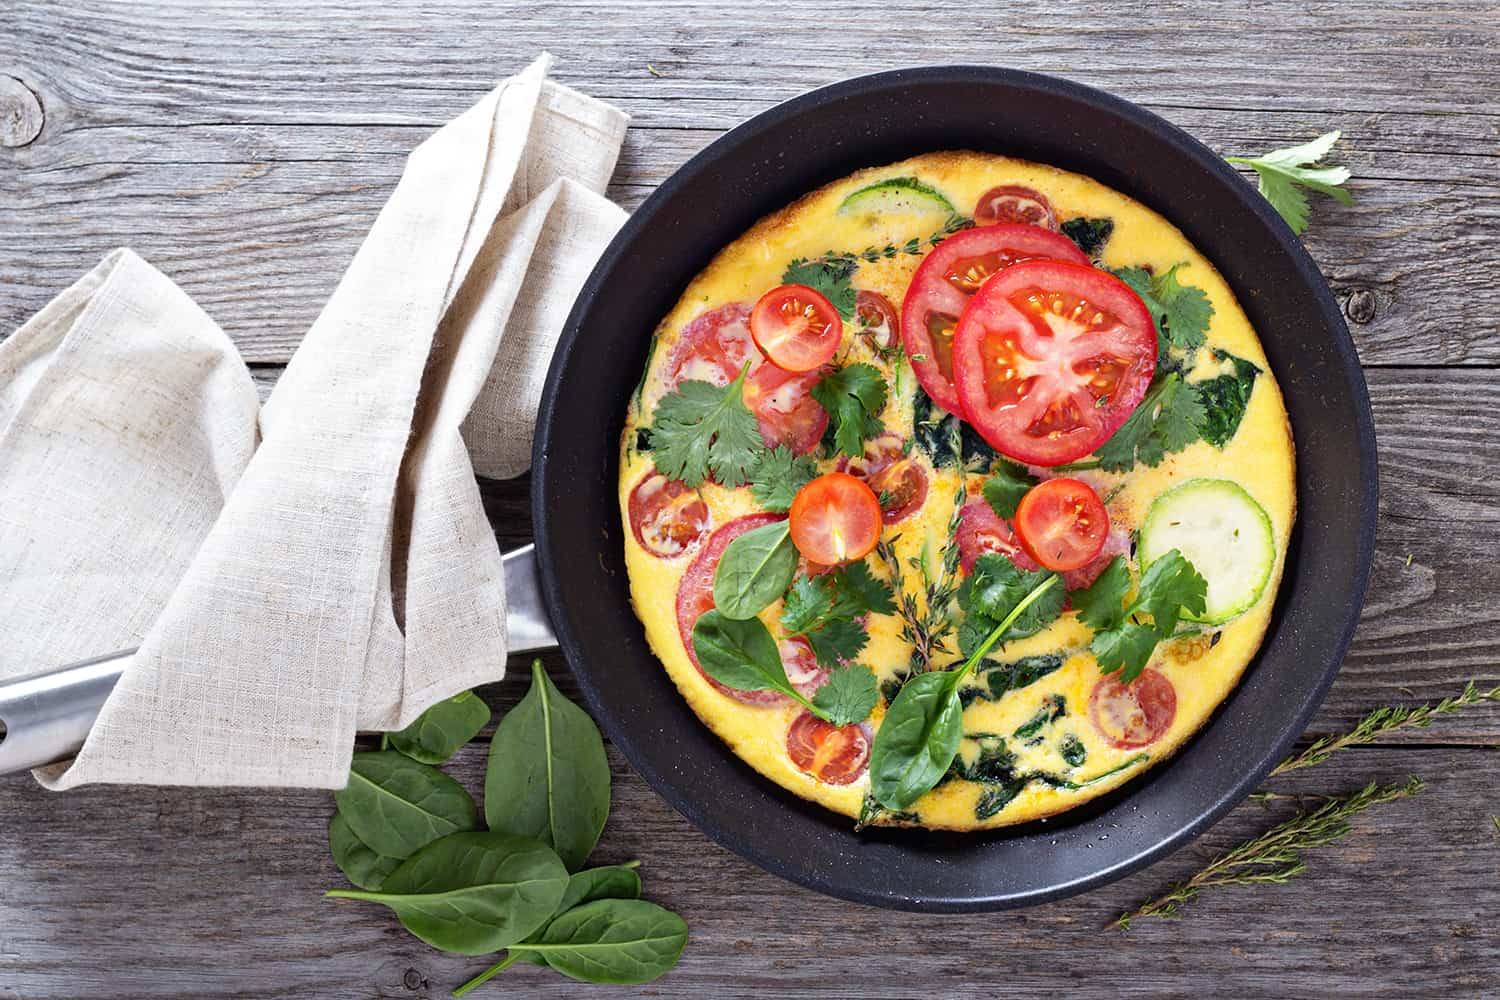 Spinach and Garden Vegetables Frittata